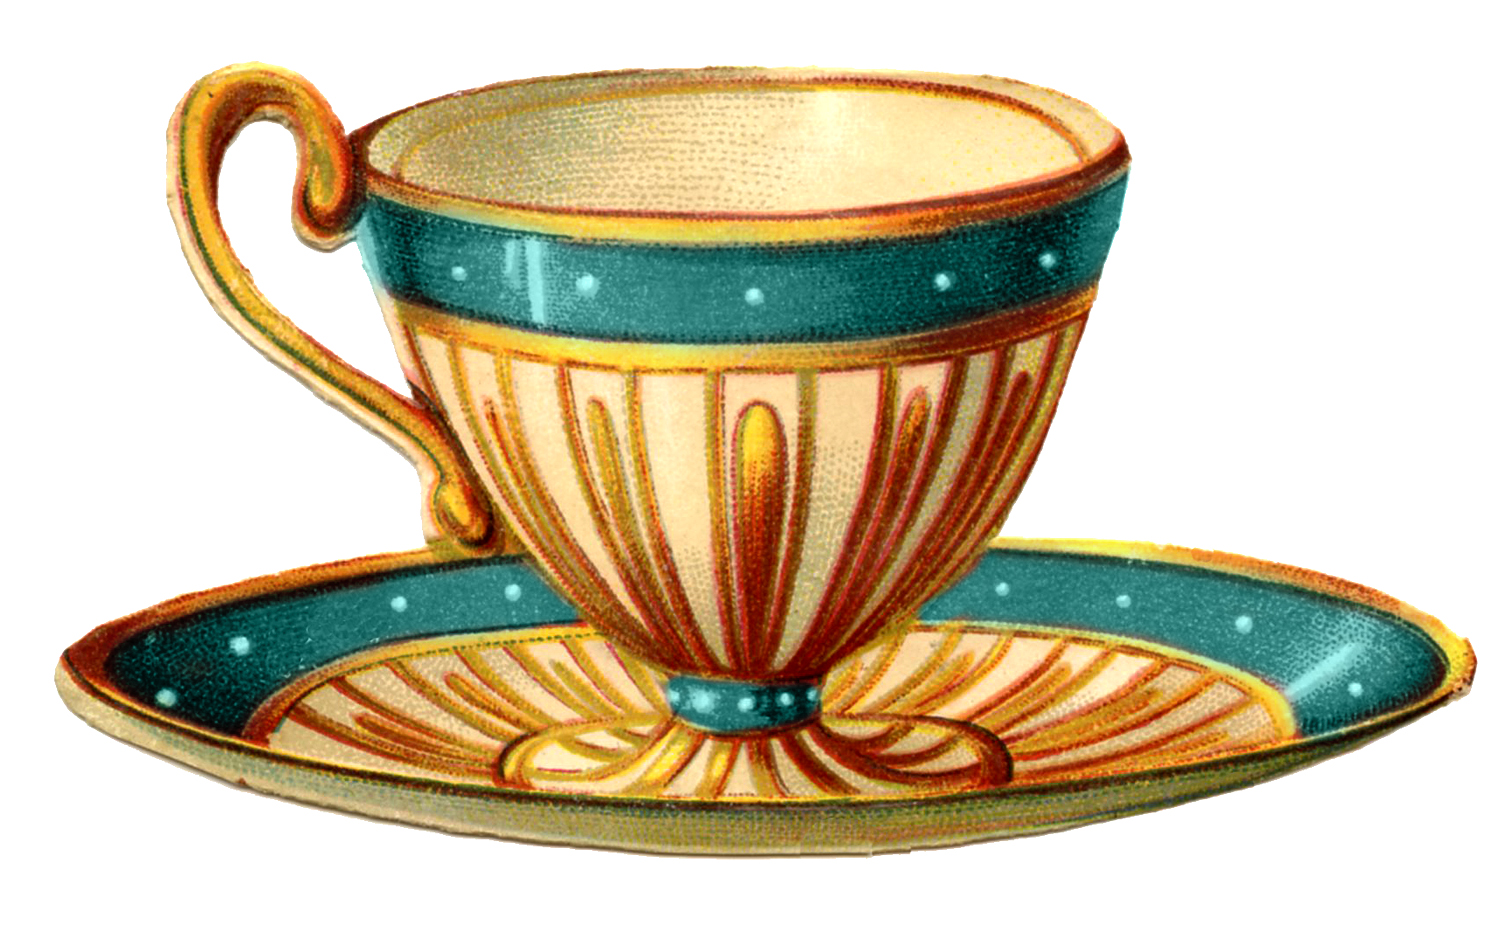 Free Teacup Cliparts, Download Free Clip Art, Free Clip Art on.